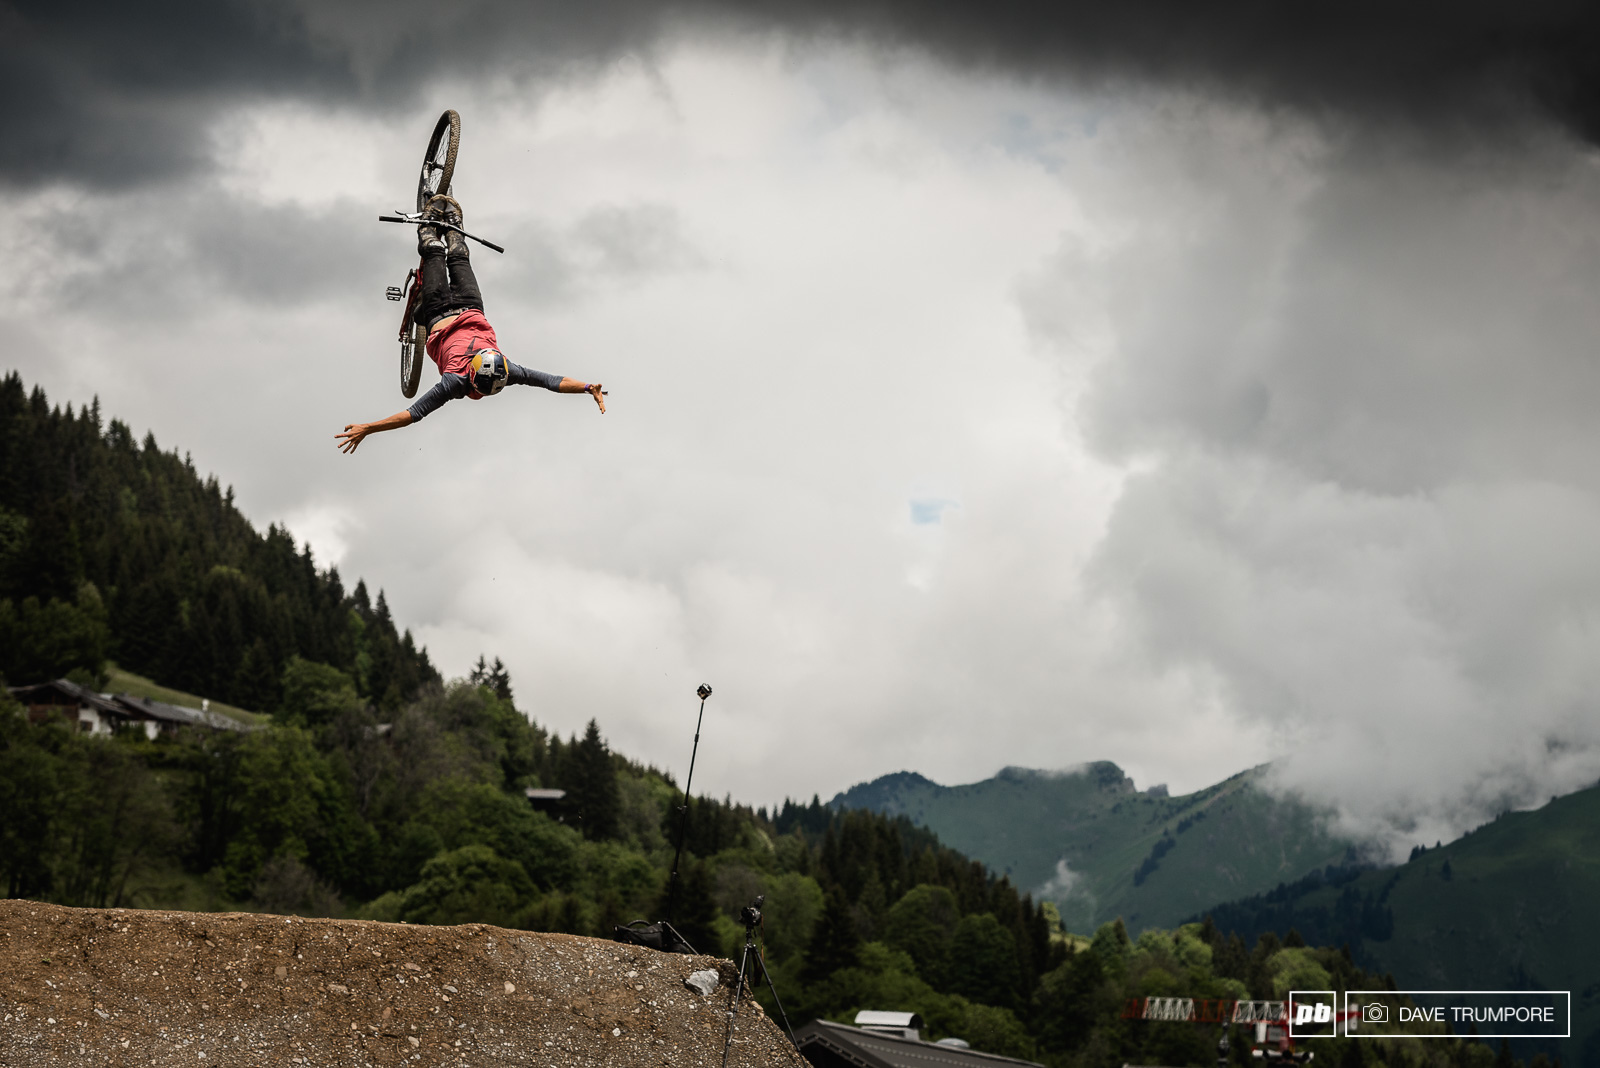 Szymon Godziek threw down the first crazy trick of the day with this backflip cliffhanger.